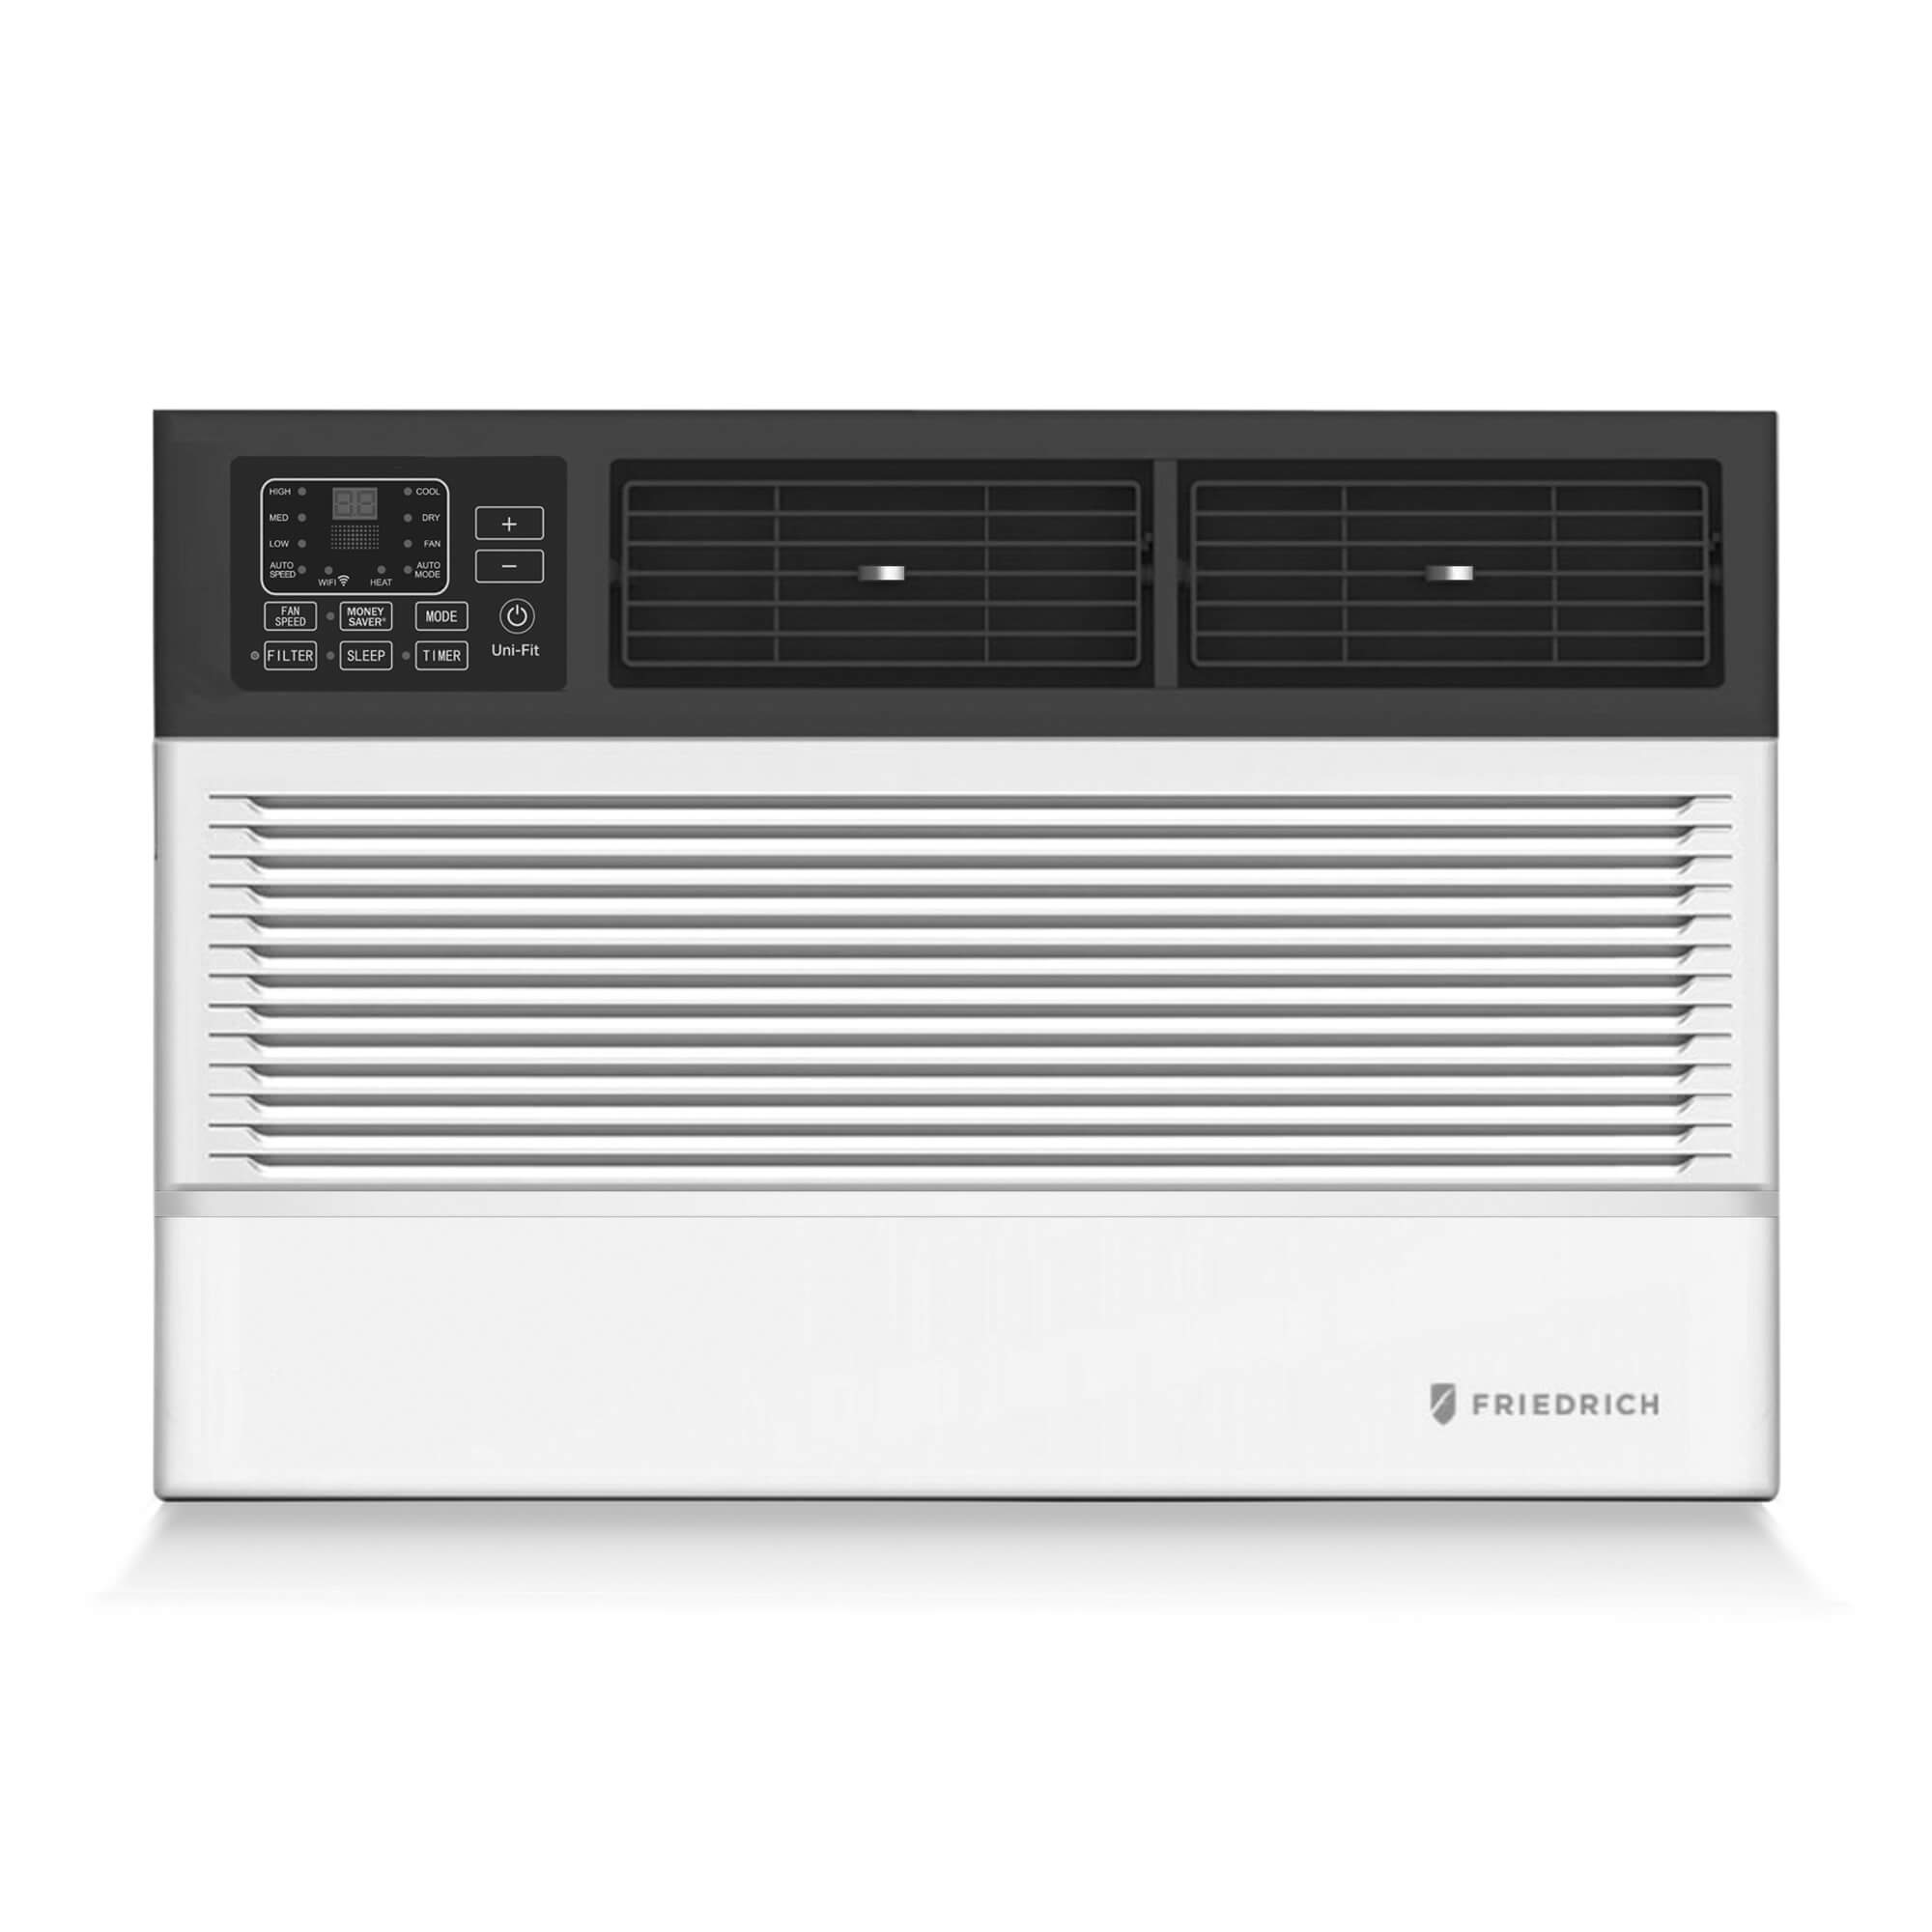 Residential Through-The-Wall Air Conditioners   FriedrichFriedrich Air Conditioning